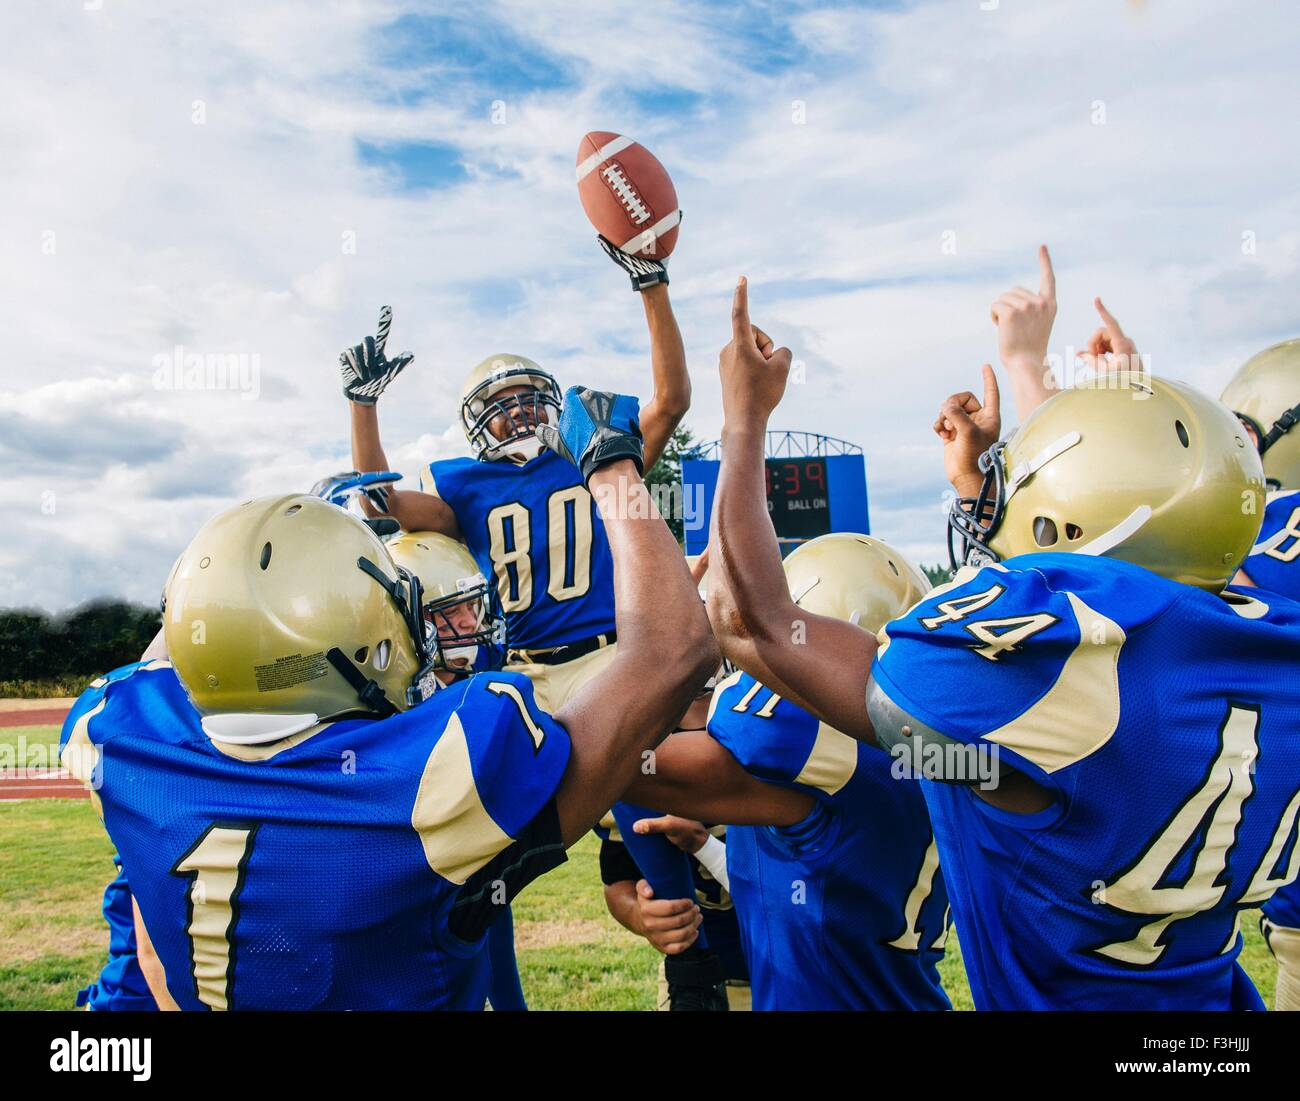 Teenage and young male American football team celebrating victory on soccer pitch - Stock Image